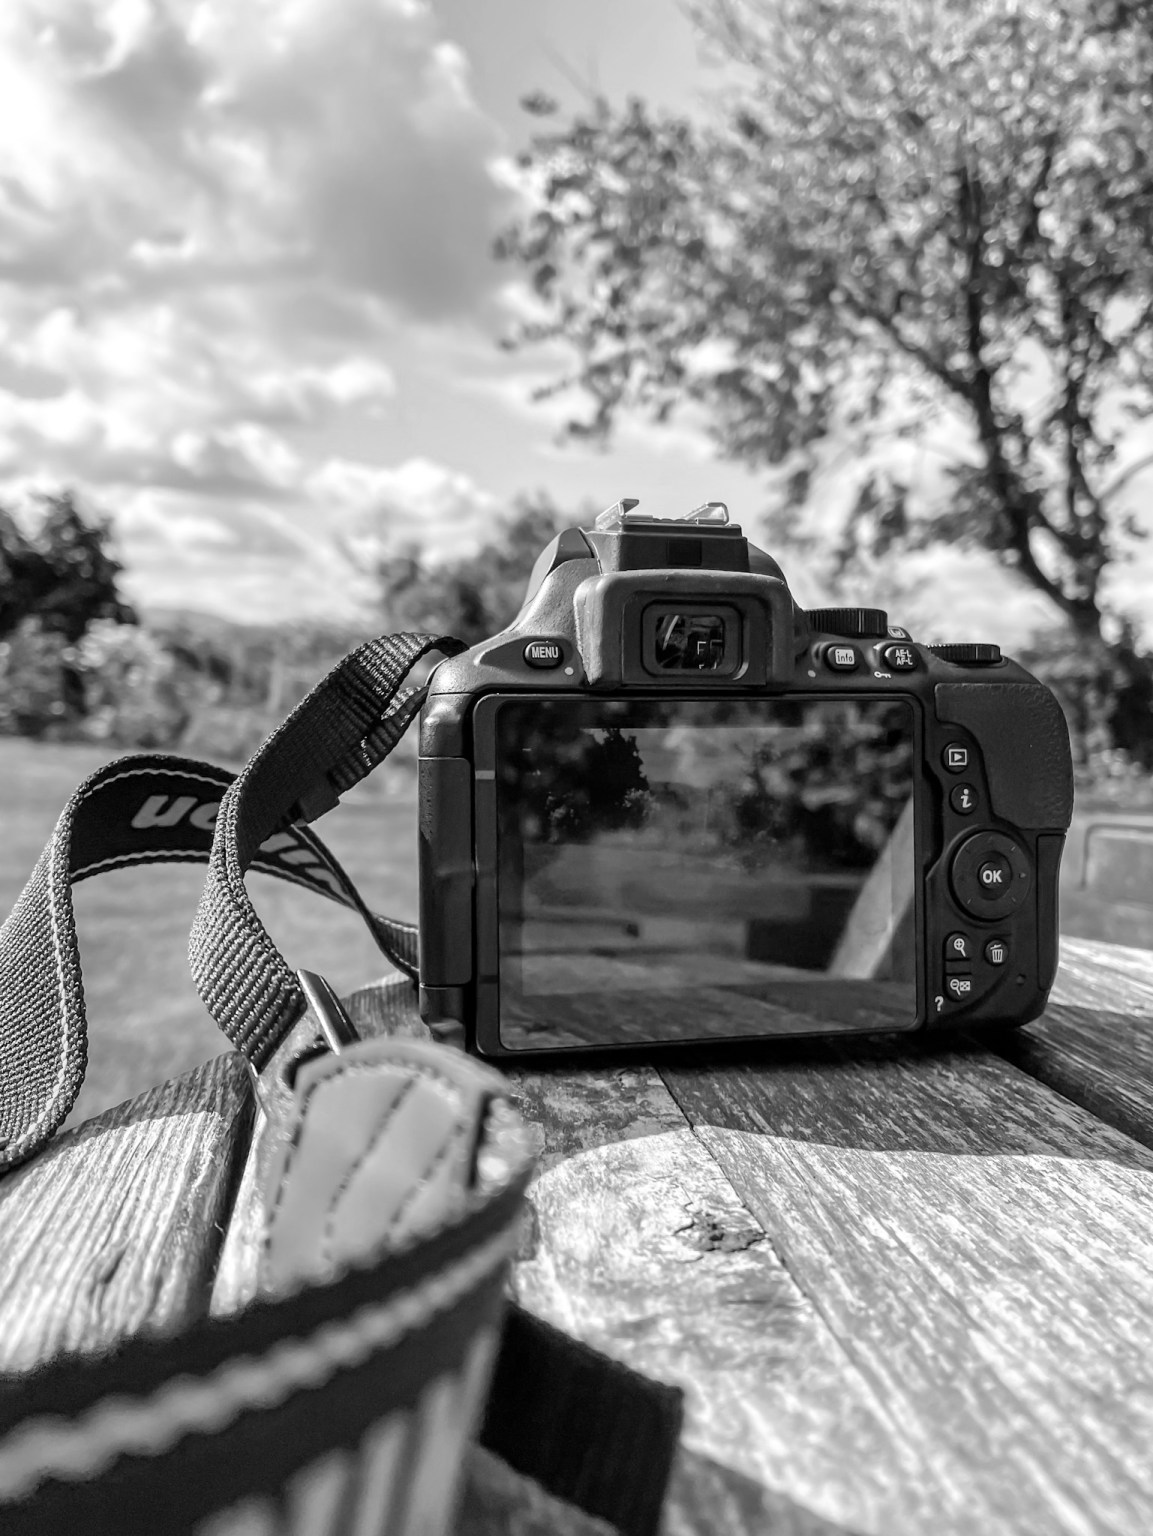 Black and white image of a digital camera on a wooden bench